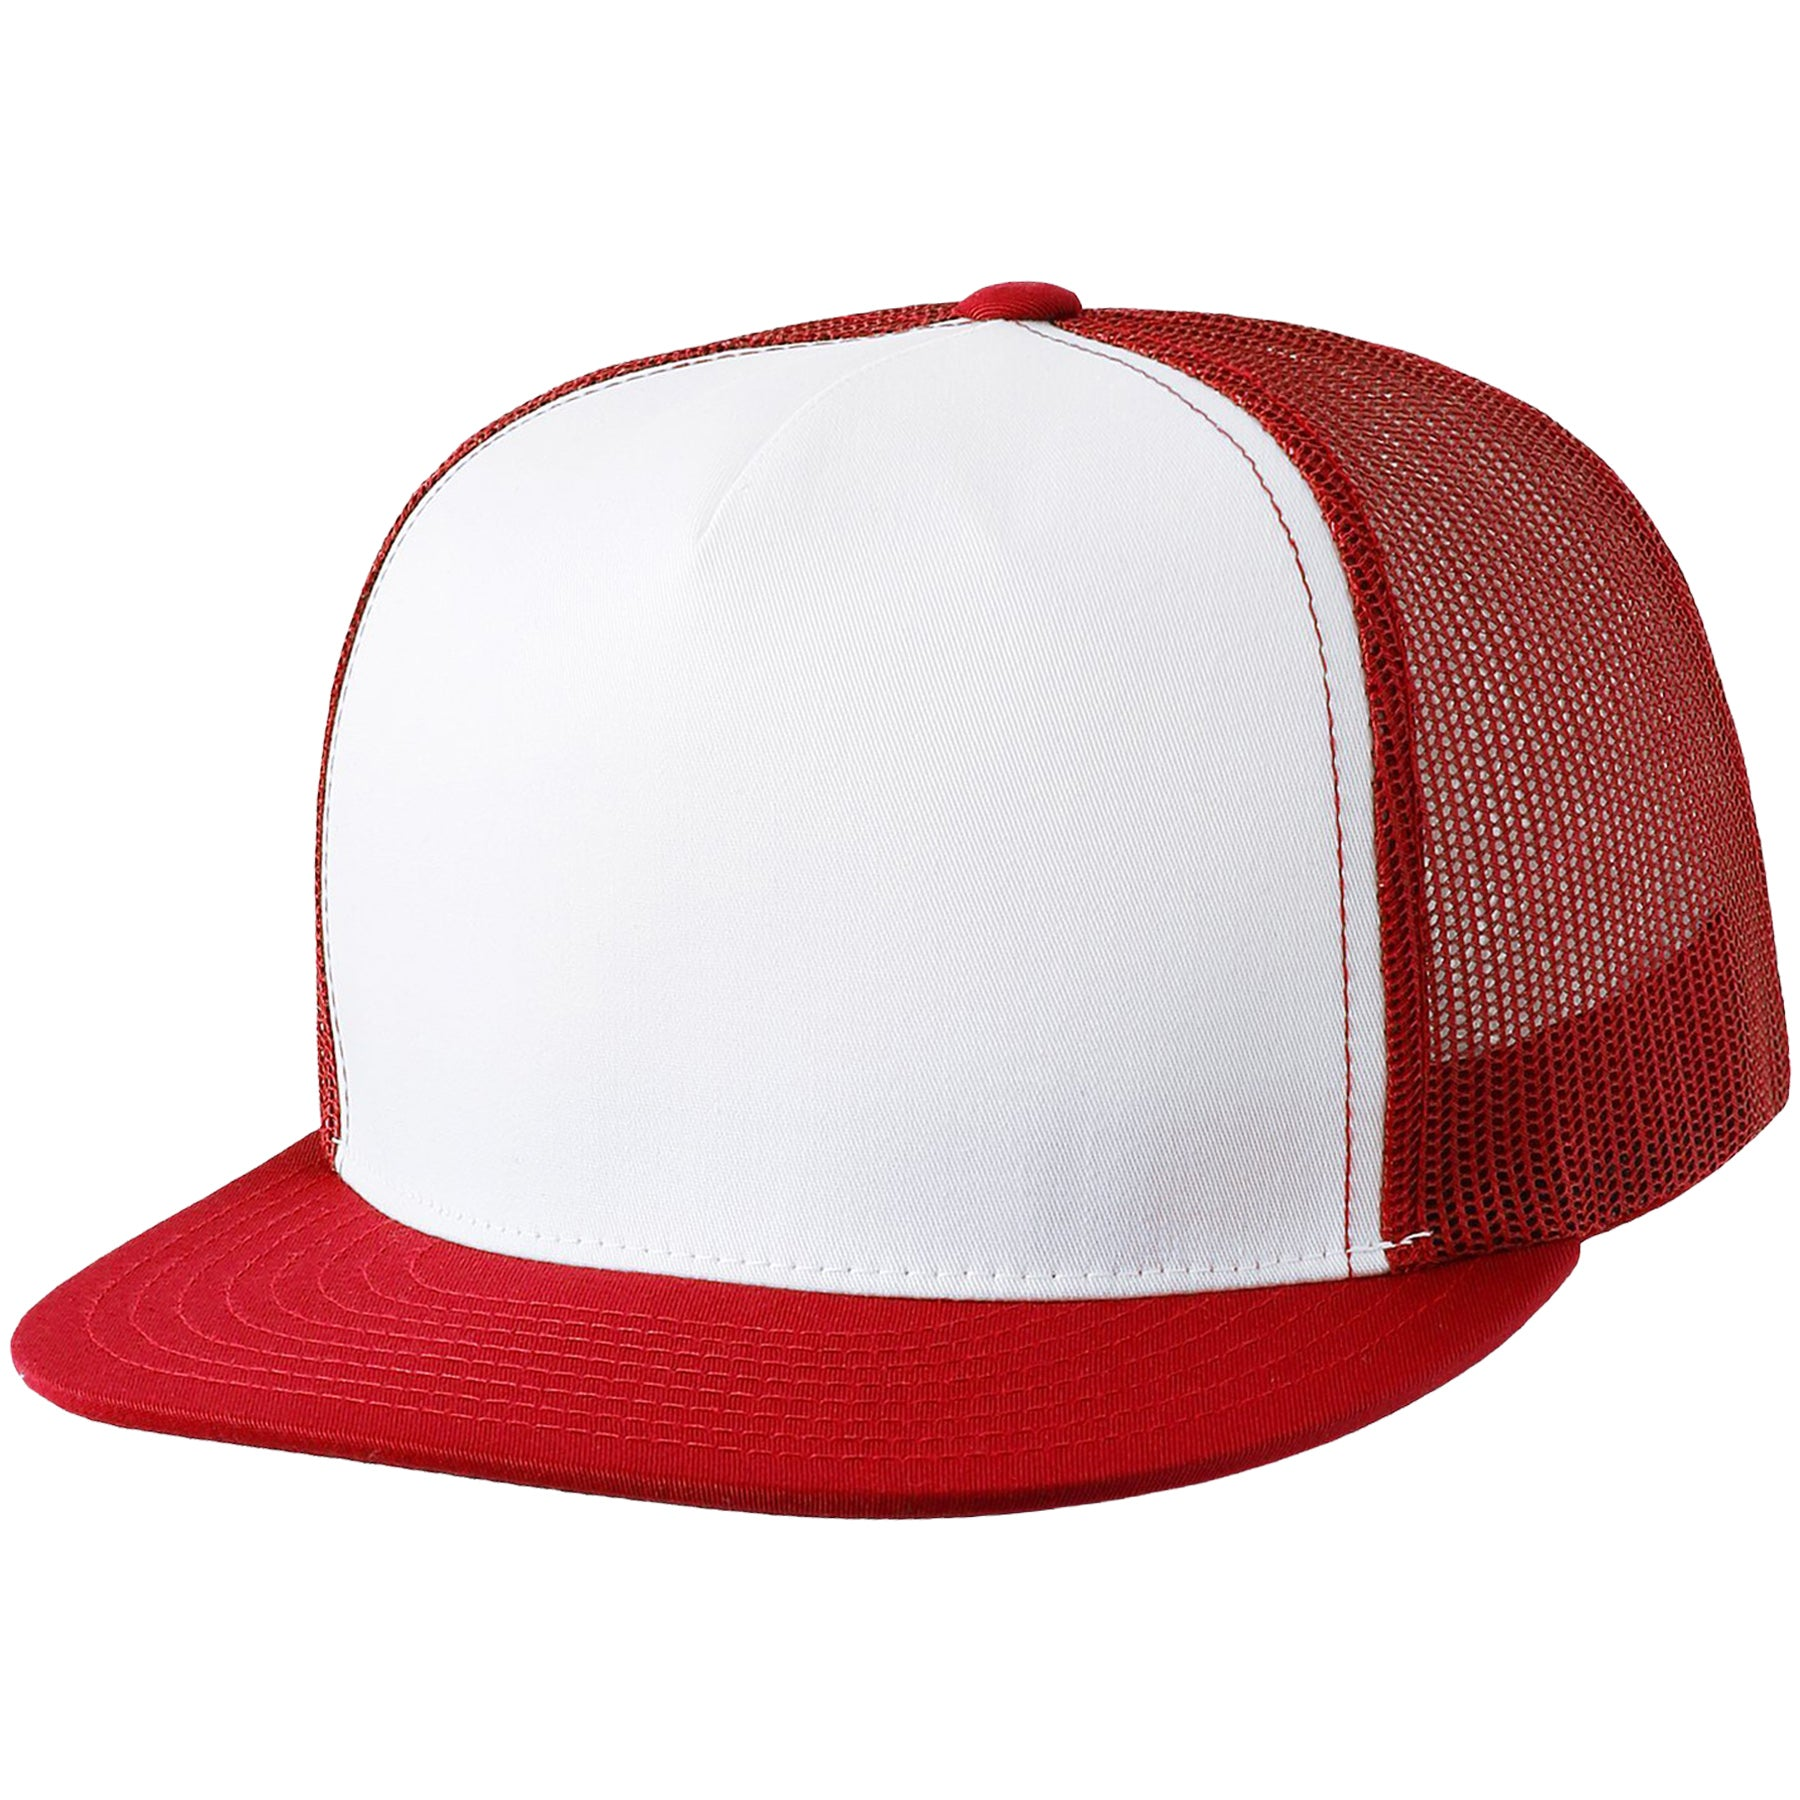 the white on red trucker hat has a white crown and a red brim with red 516f496b6a1